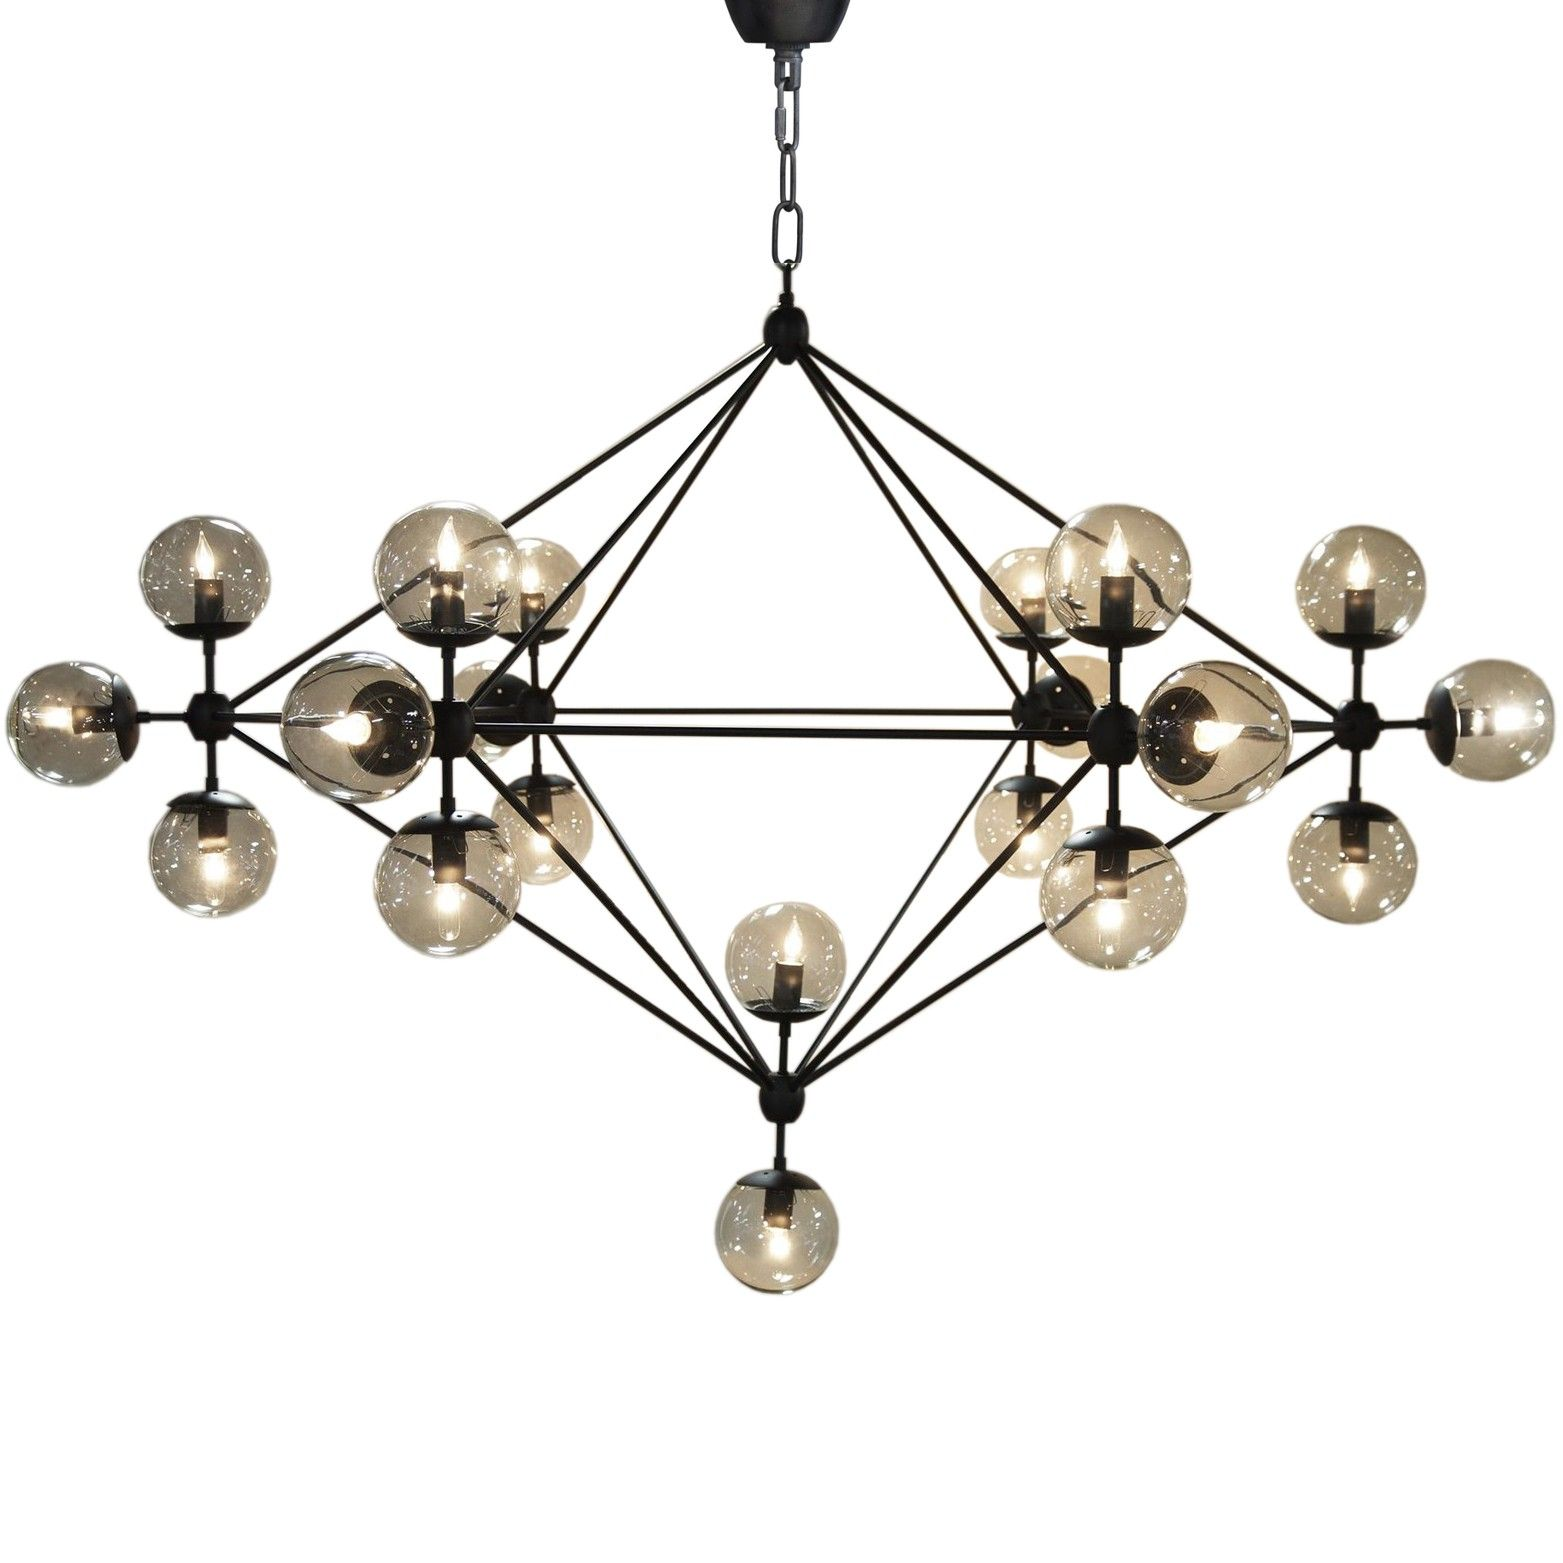 The Pluto Chandelier by Noir emphasizes natural simple and